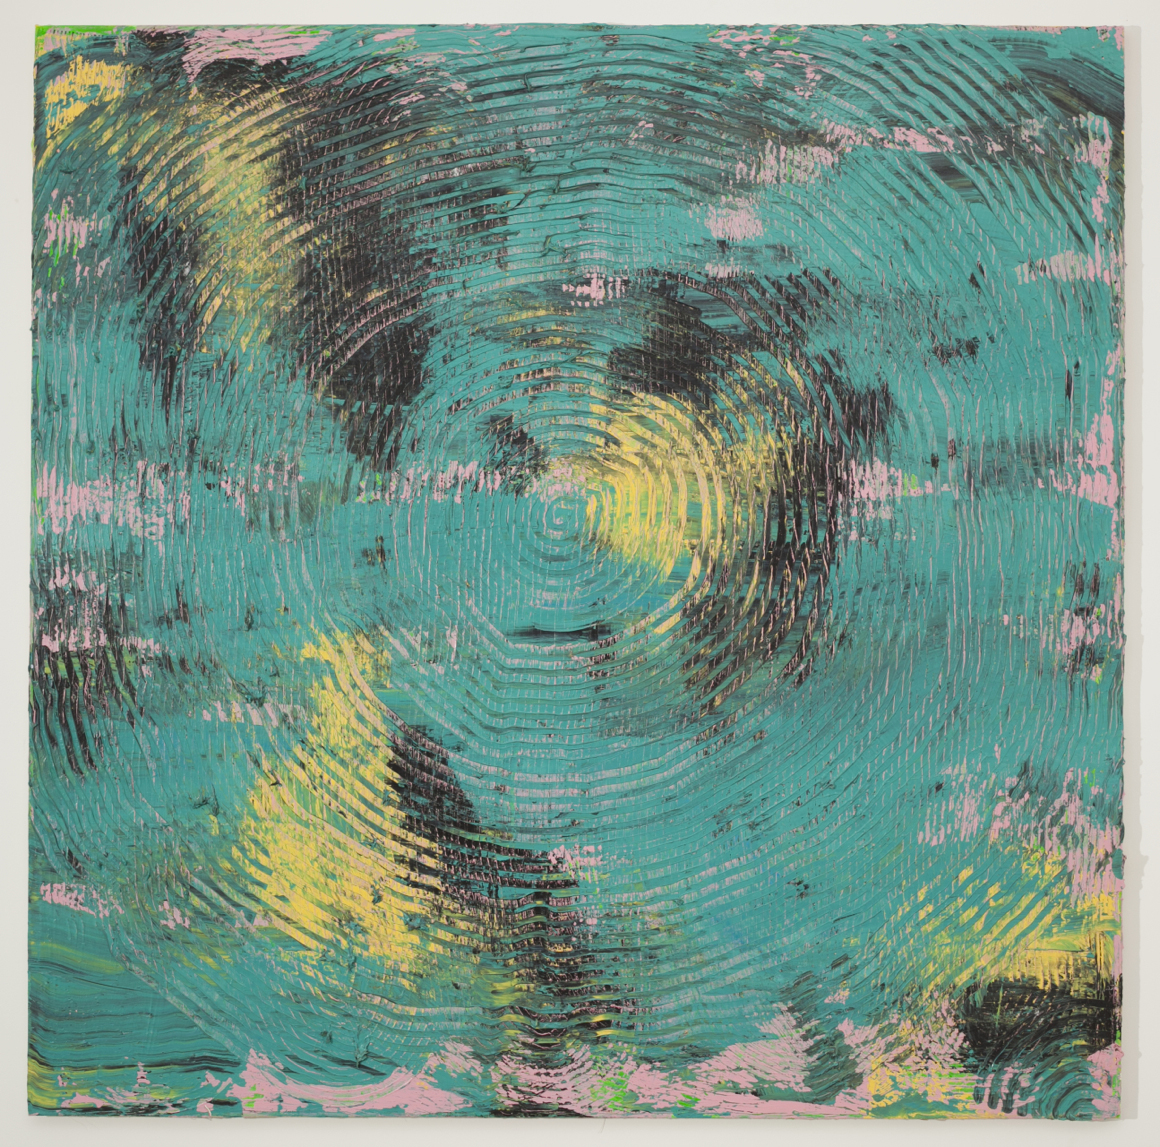 <p><em>Teal</em><span class='media'>acrylic and spray paint on canvas</span>72 x 72 in (182.9 x 182.9 cm)<br>2014<br></p>